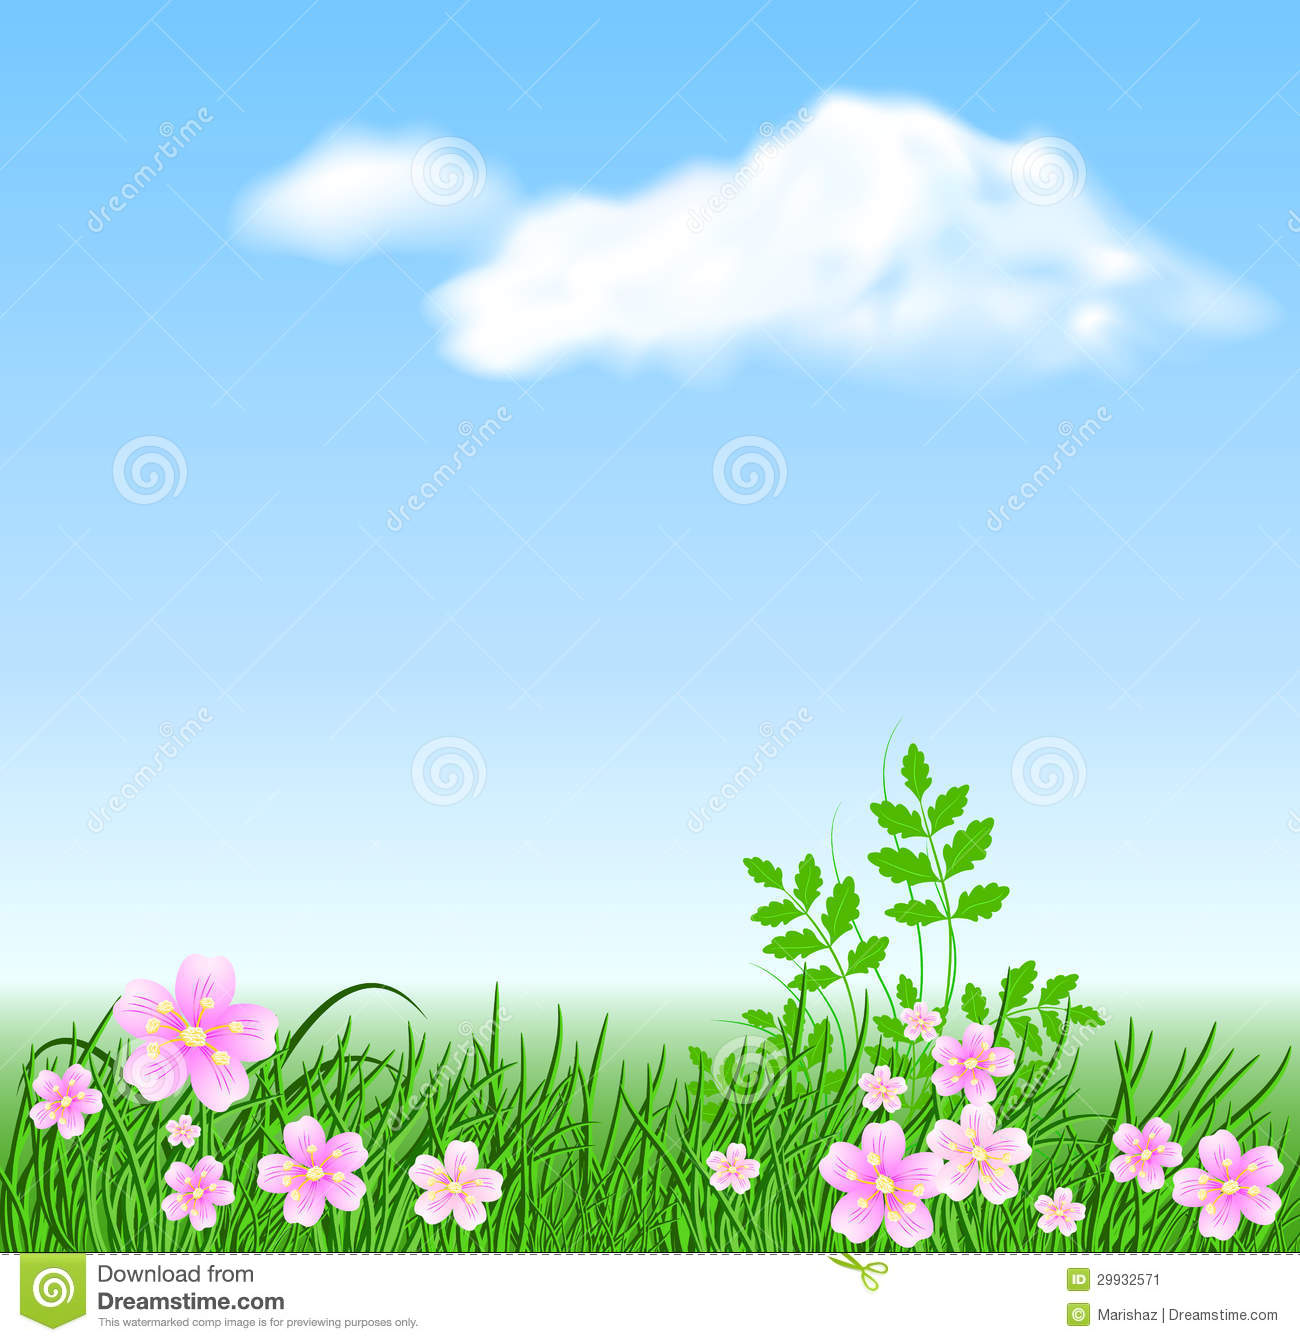 Meadow Flowers On The Sky Background Stock Image - Image: 29932571 Blue Easter Eggs